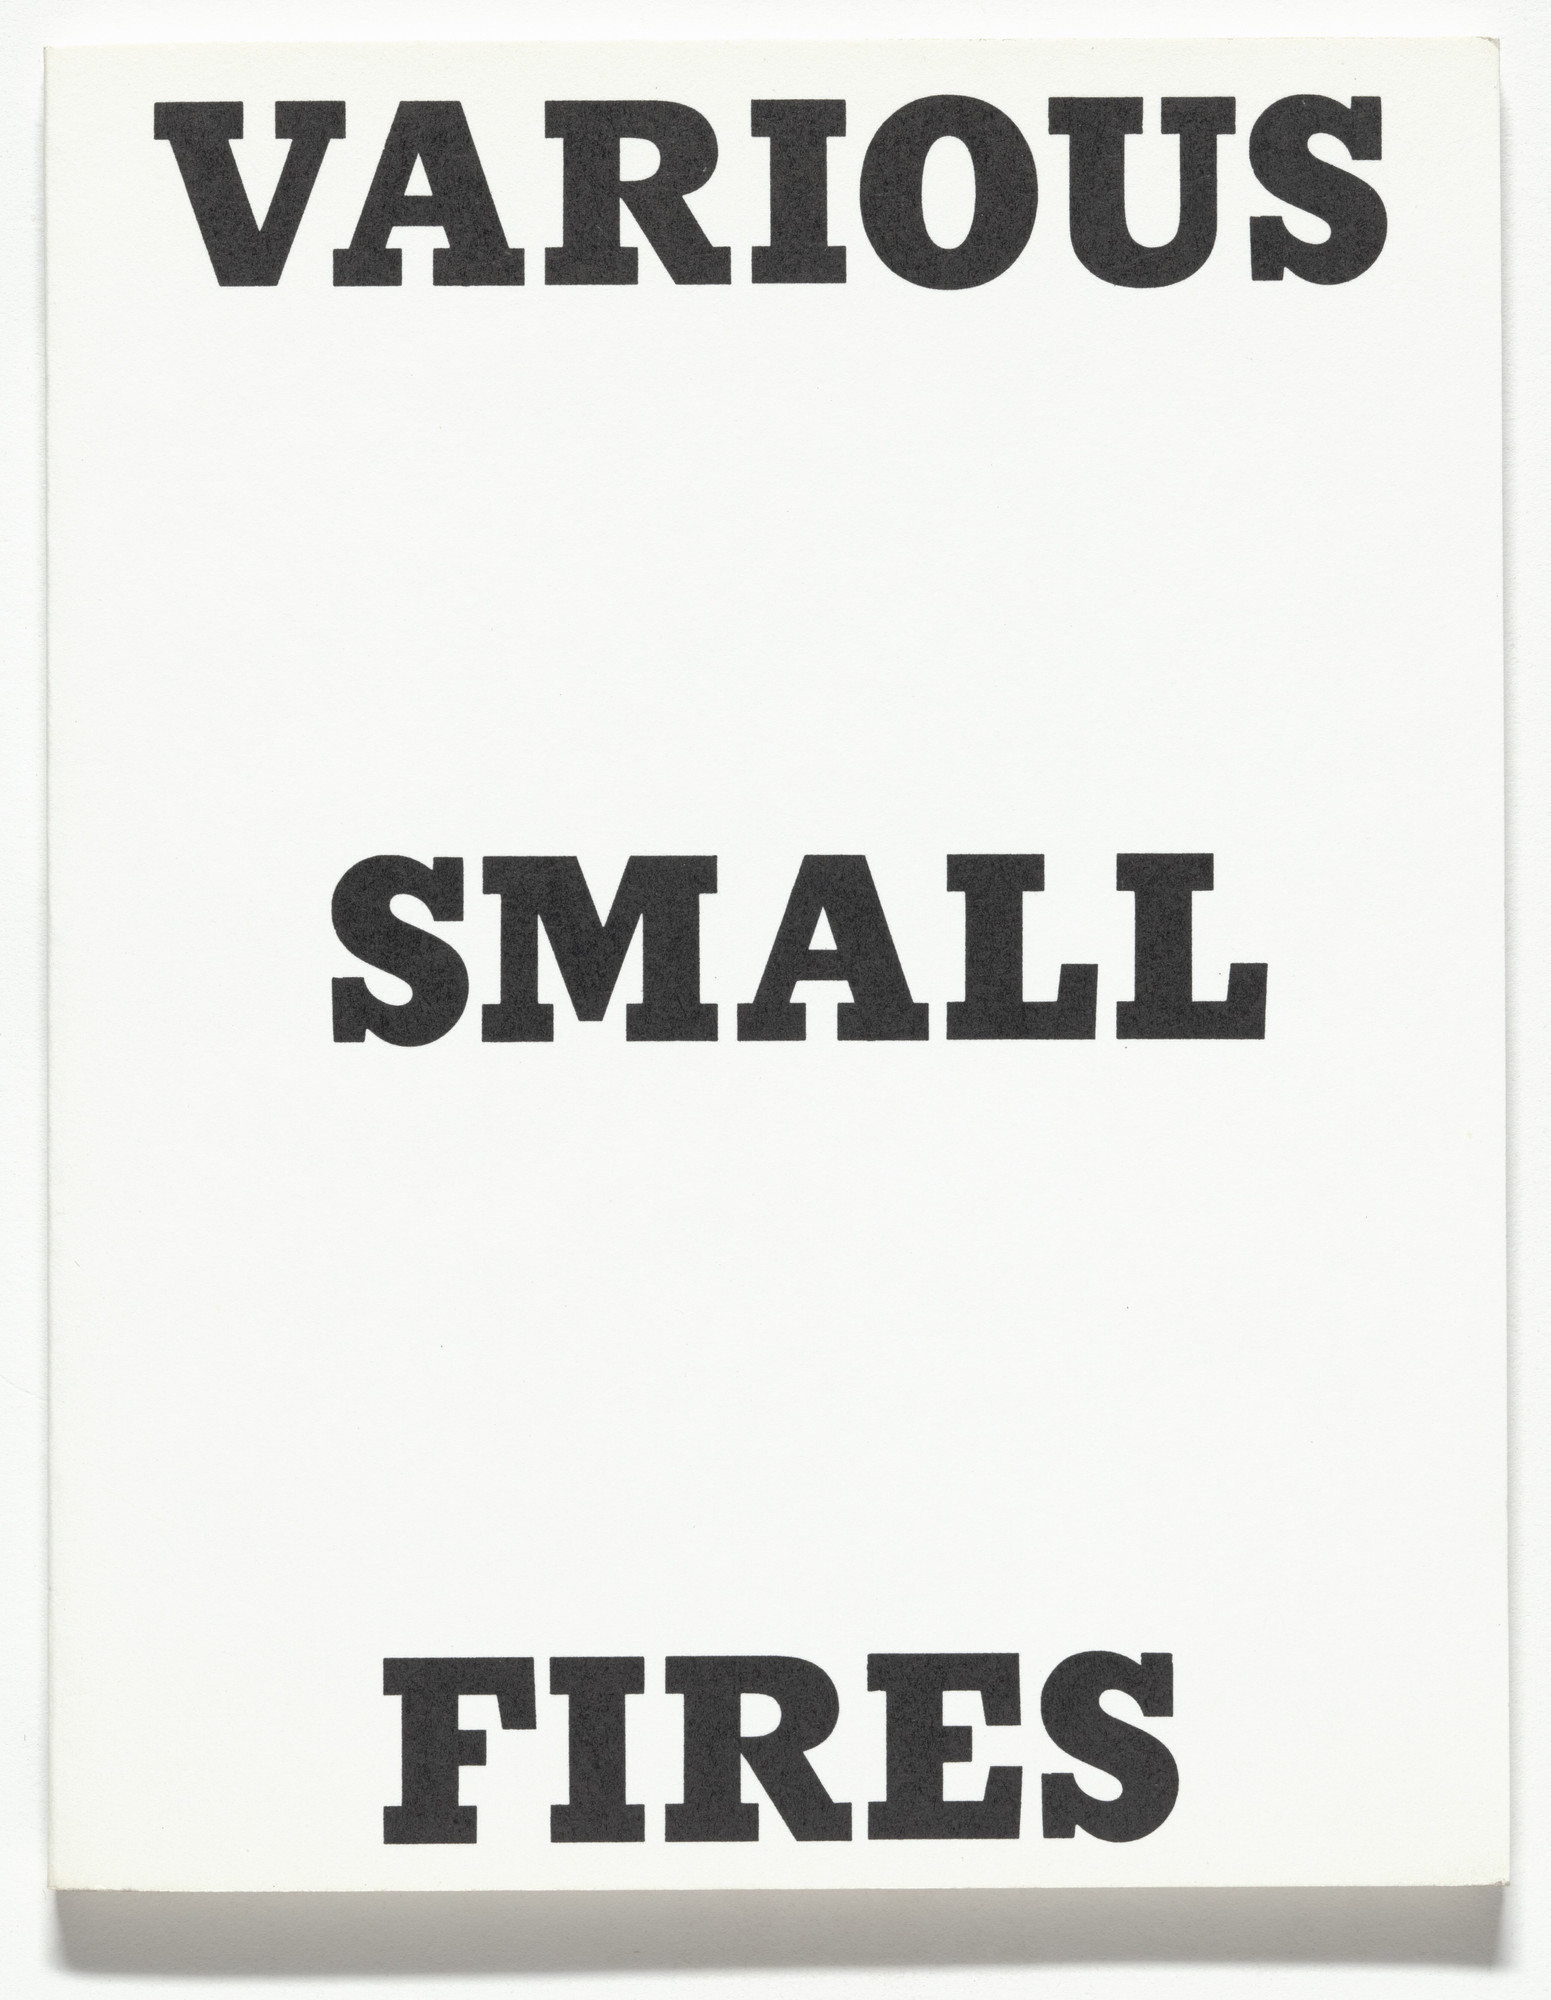 Edward Ruscha. Various Small Fires and Milk. 1964, printed 1970